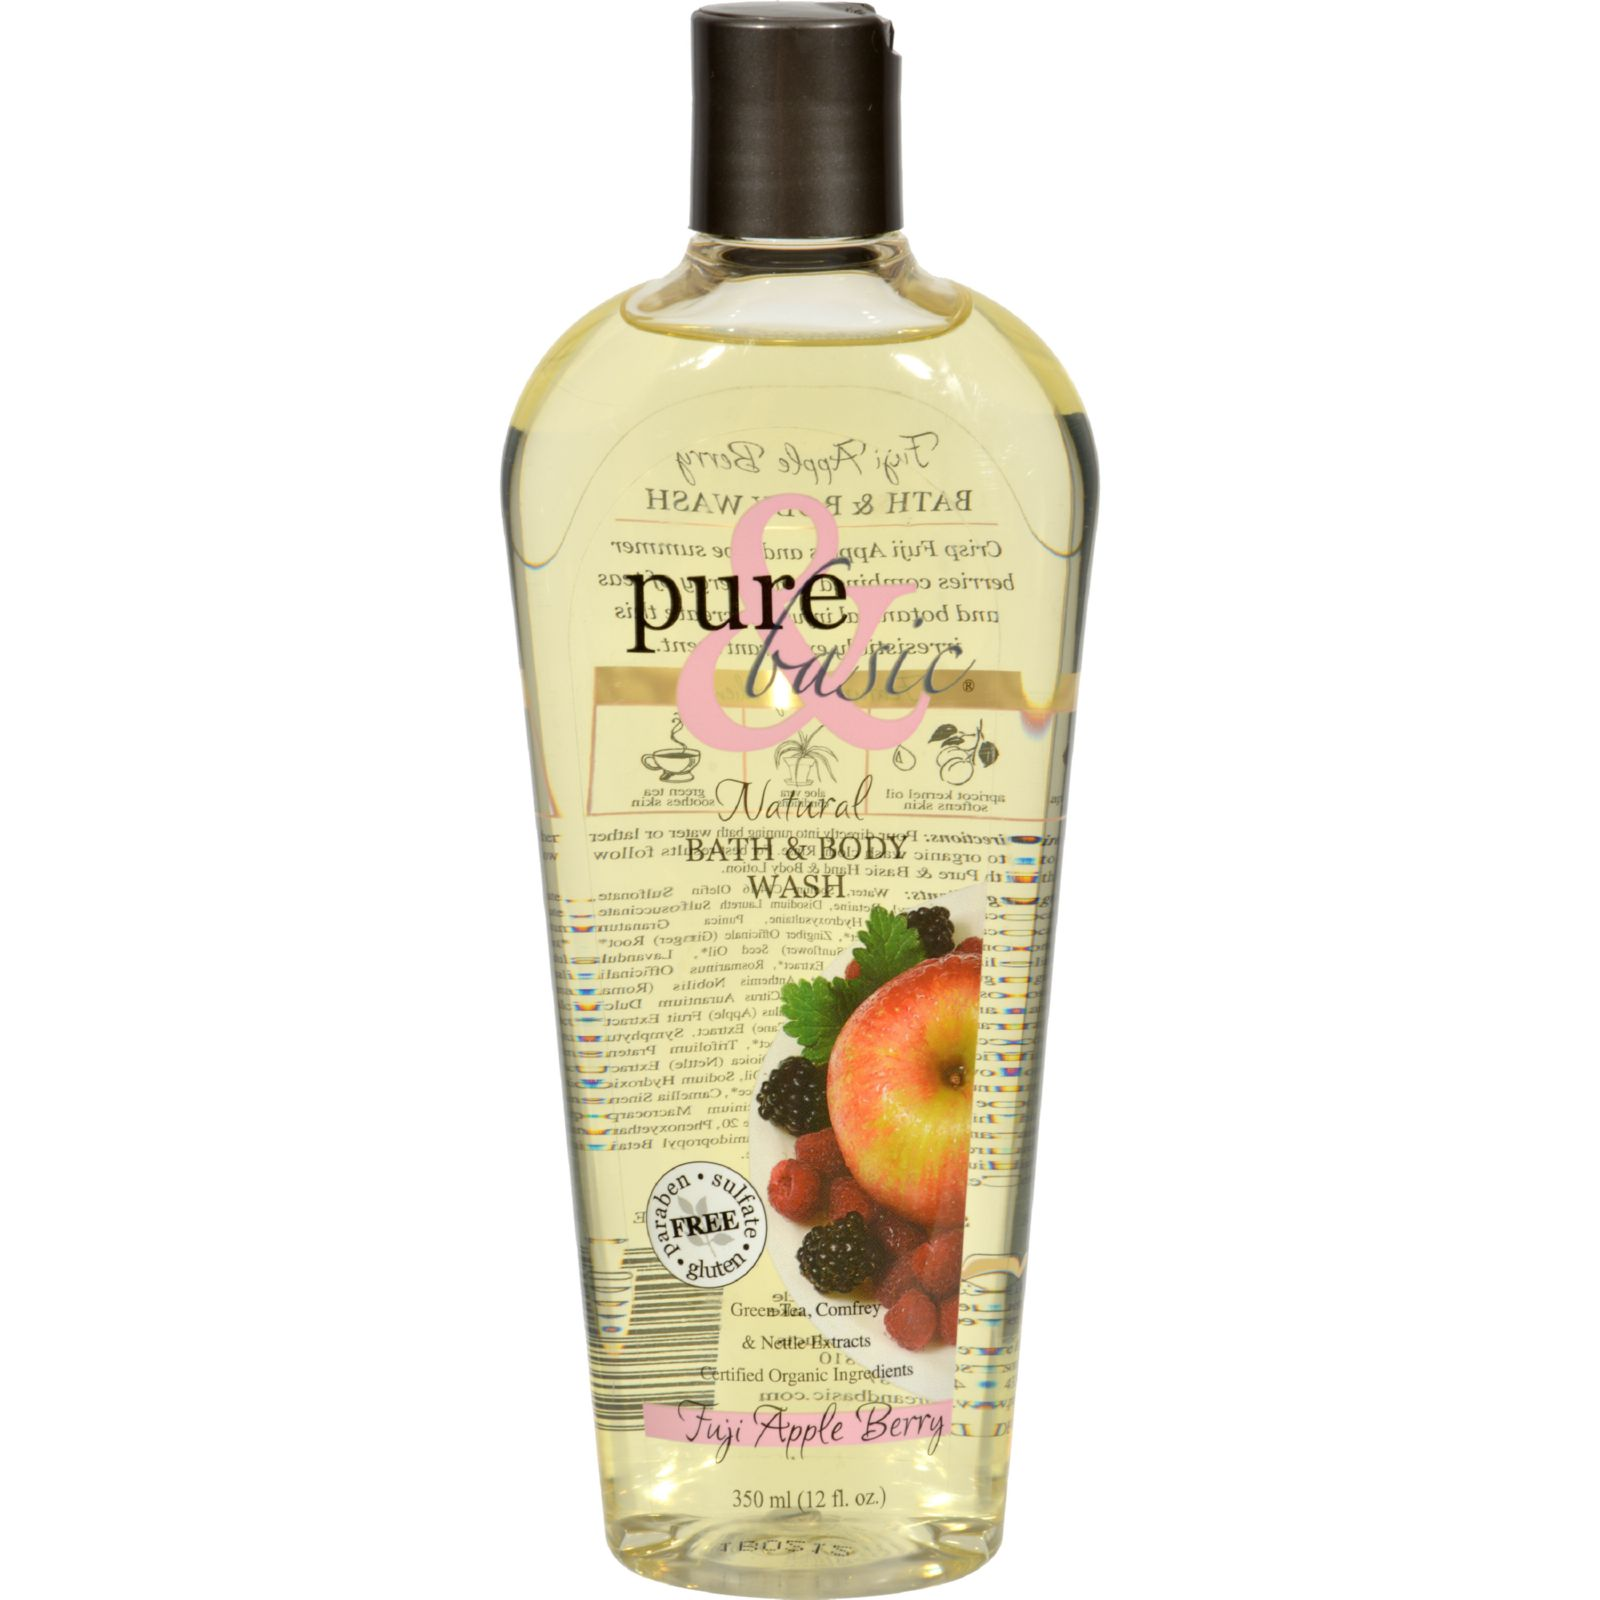 Pure And Basic Natural Bath And Body Wash Fuji Apple Berry - 12 Fl Oz